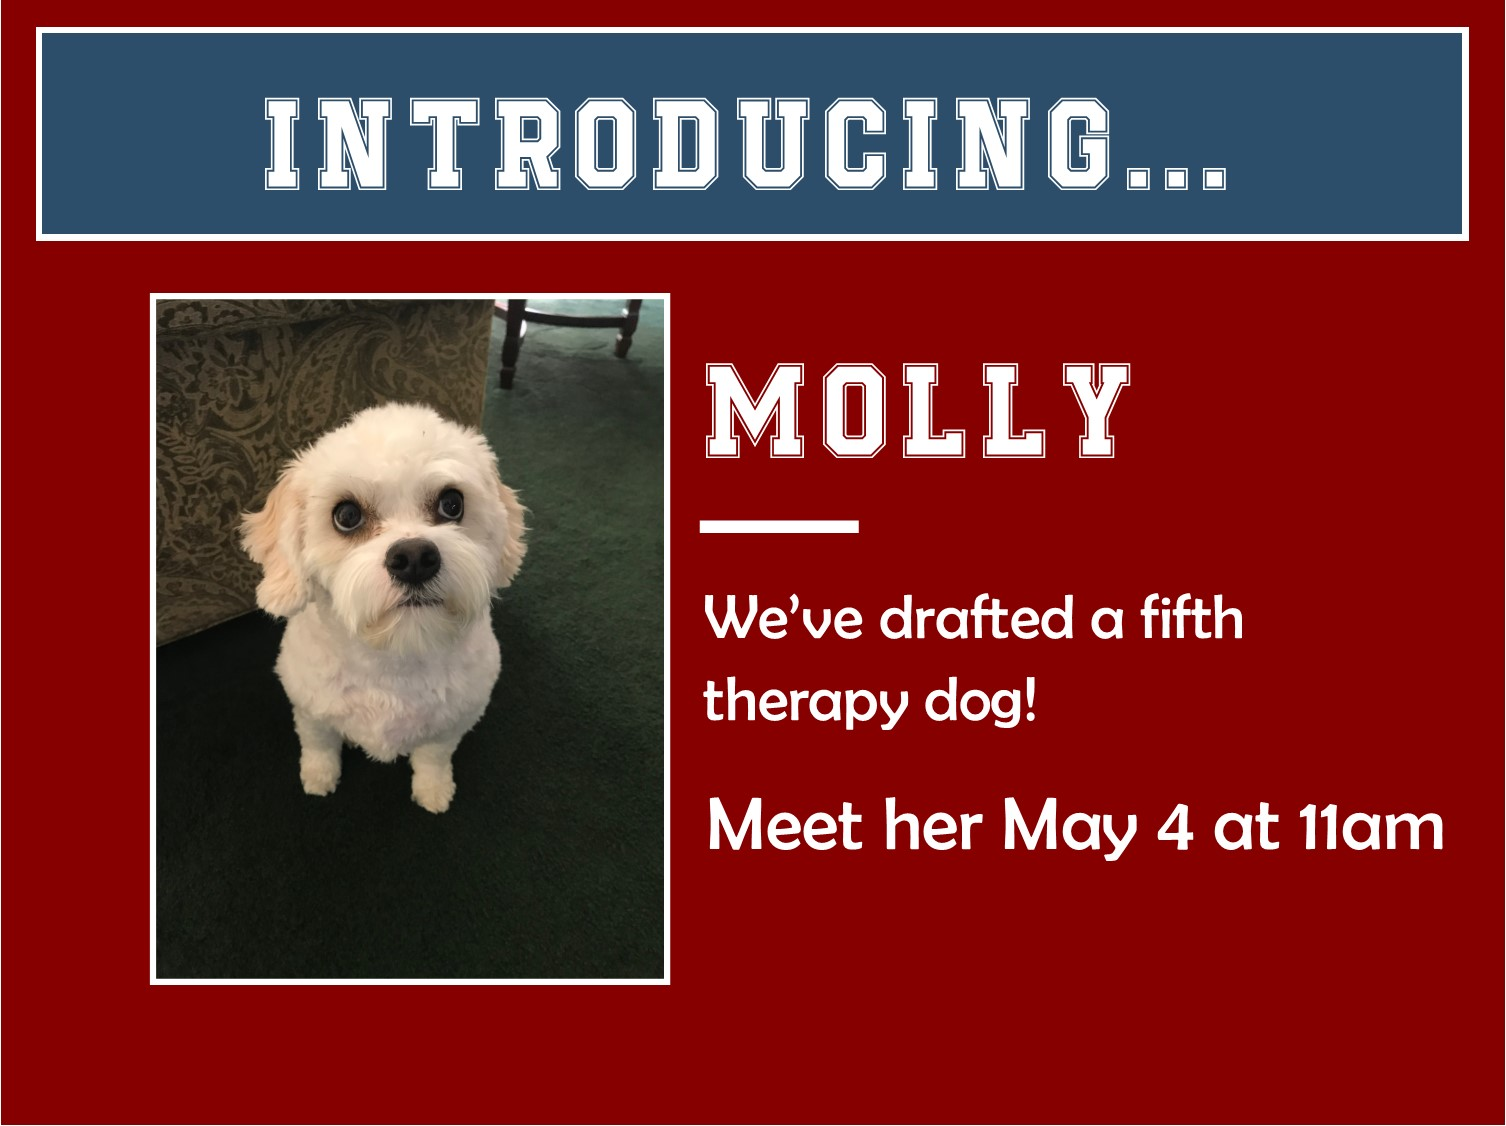 Molly therapy dog